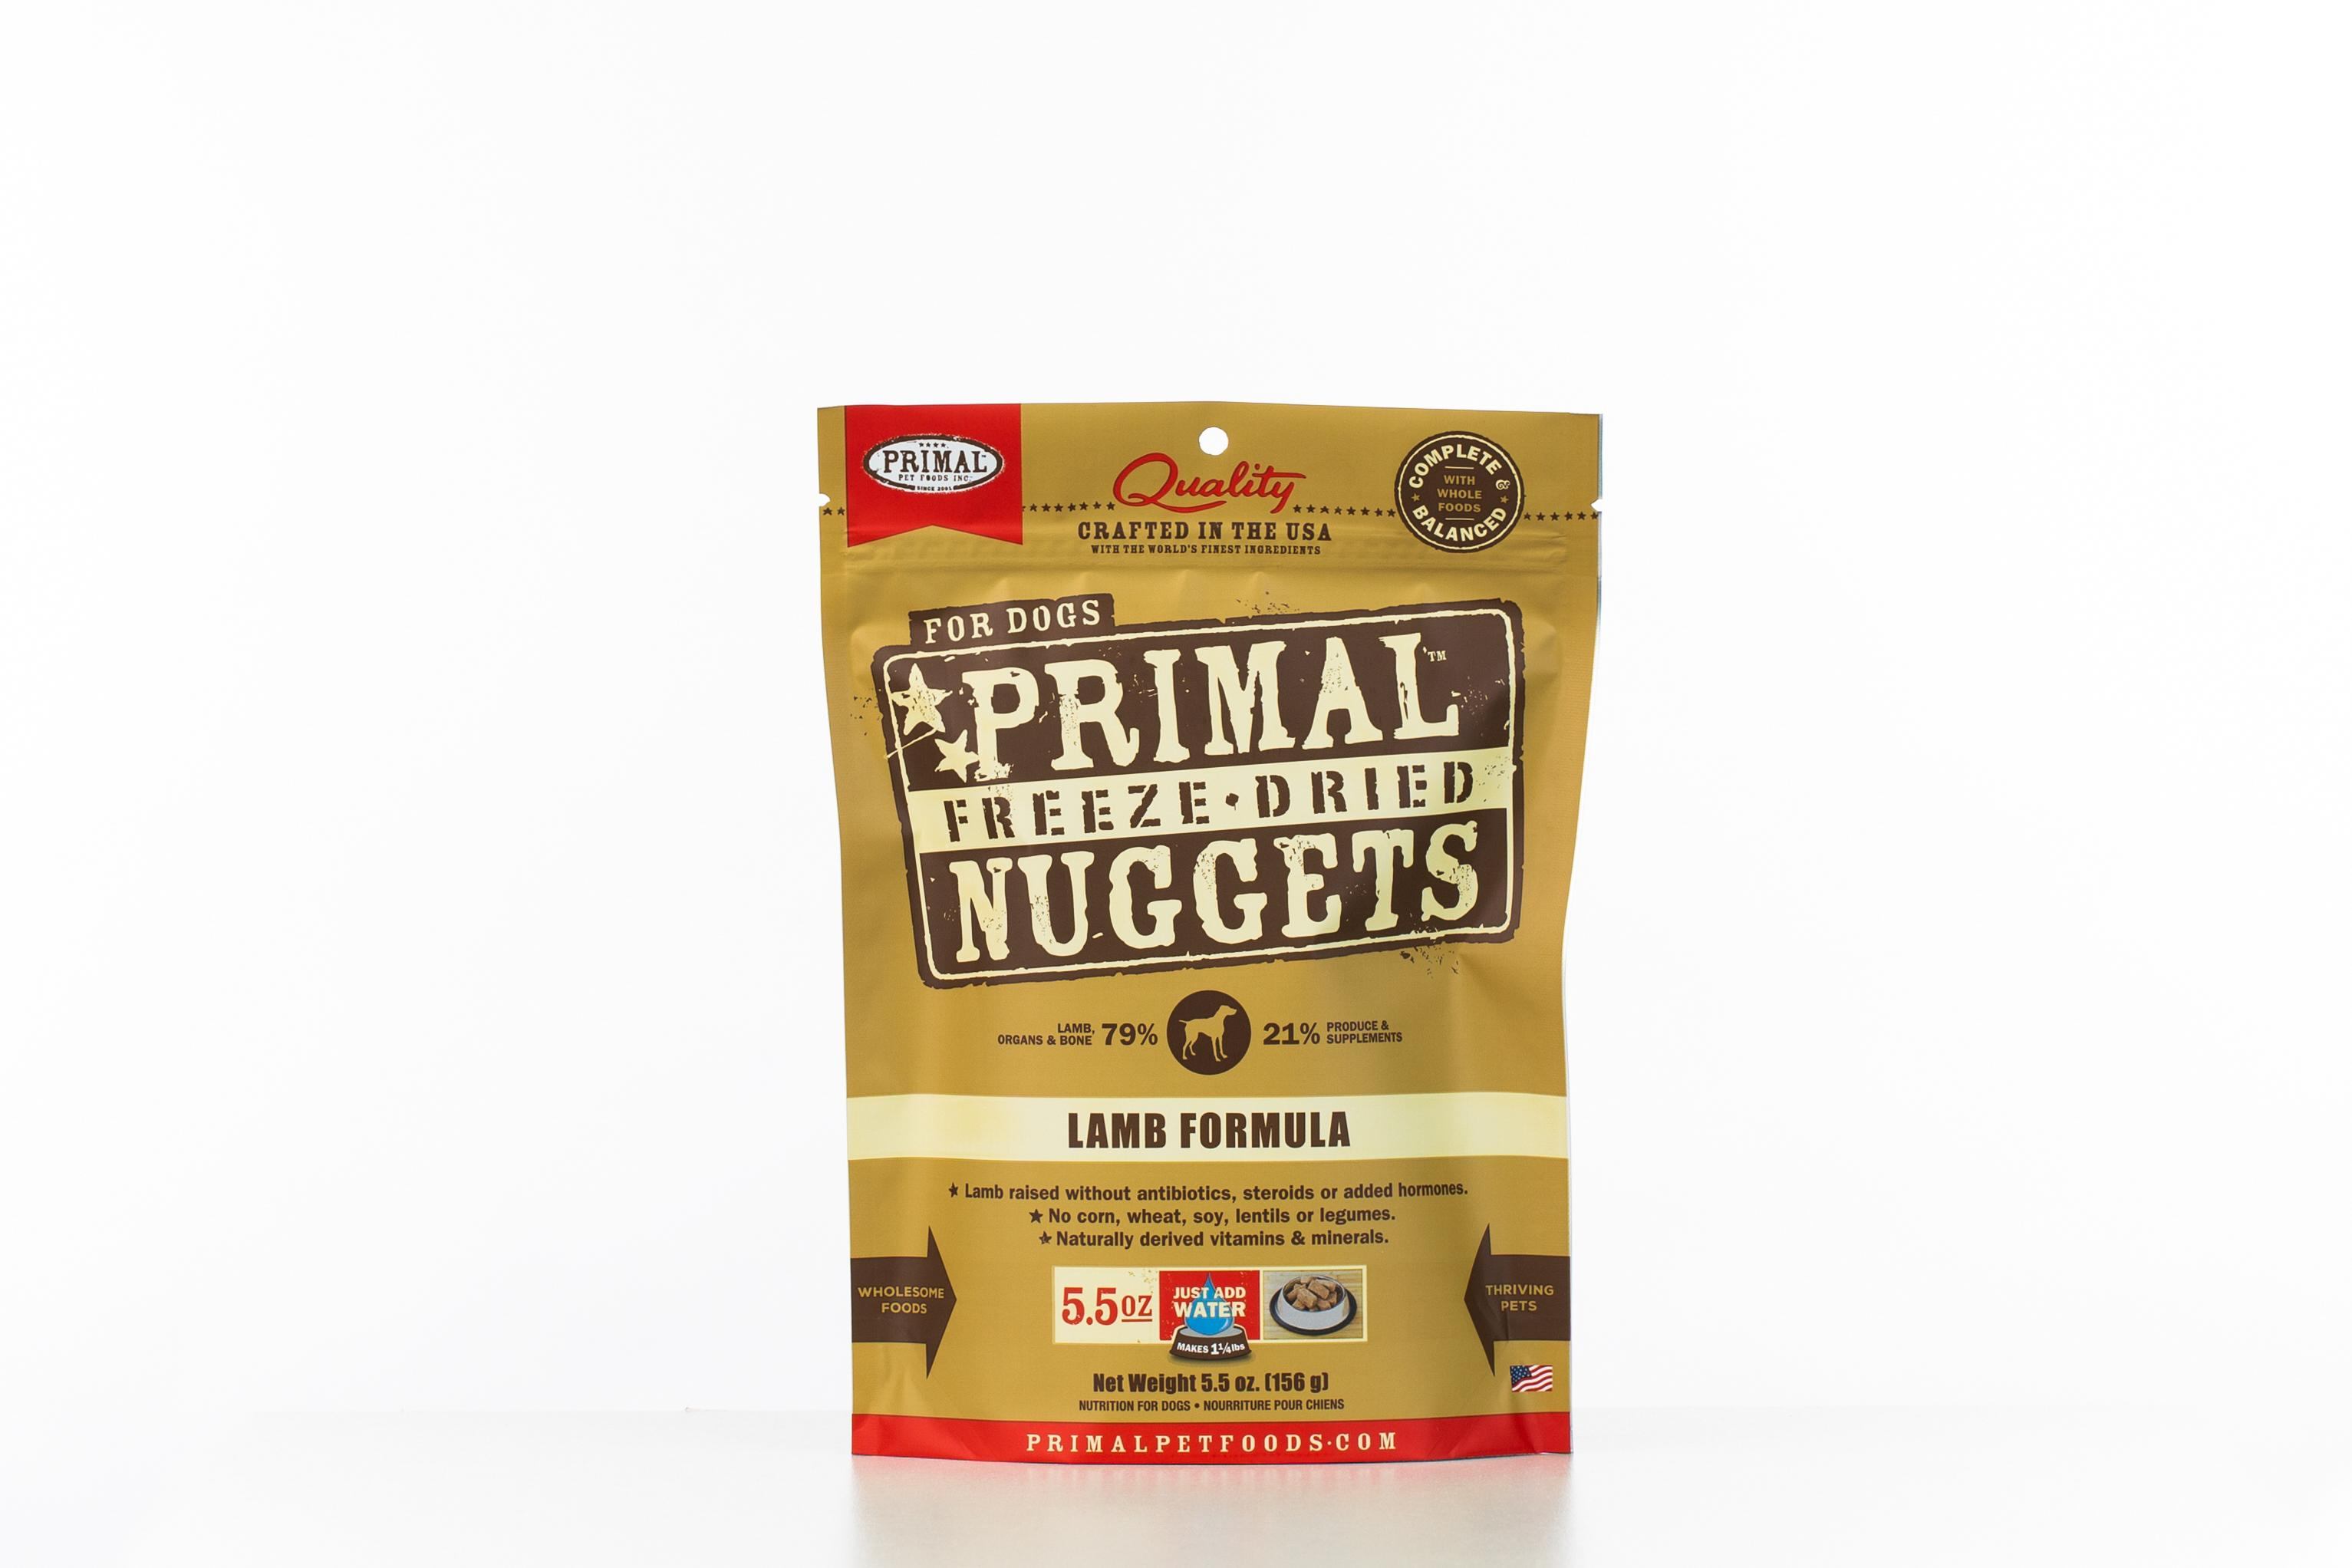 Primal Raw Freeze-Dried Nuggets Lamb Formula Dog Food Image